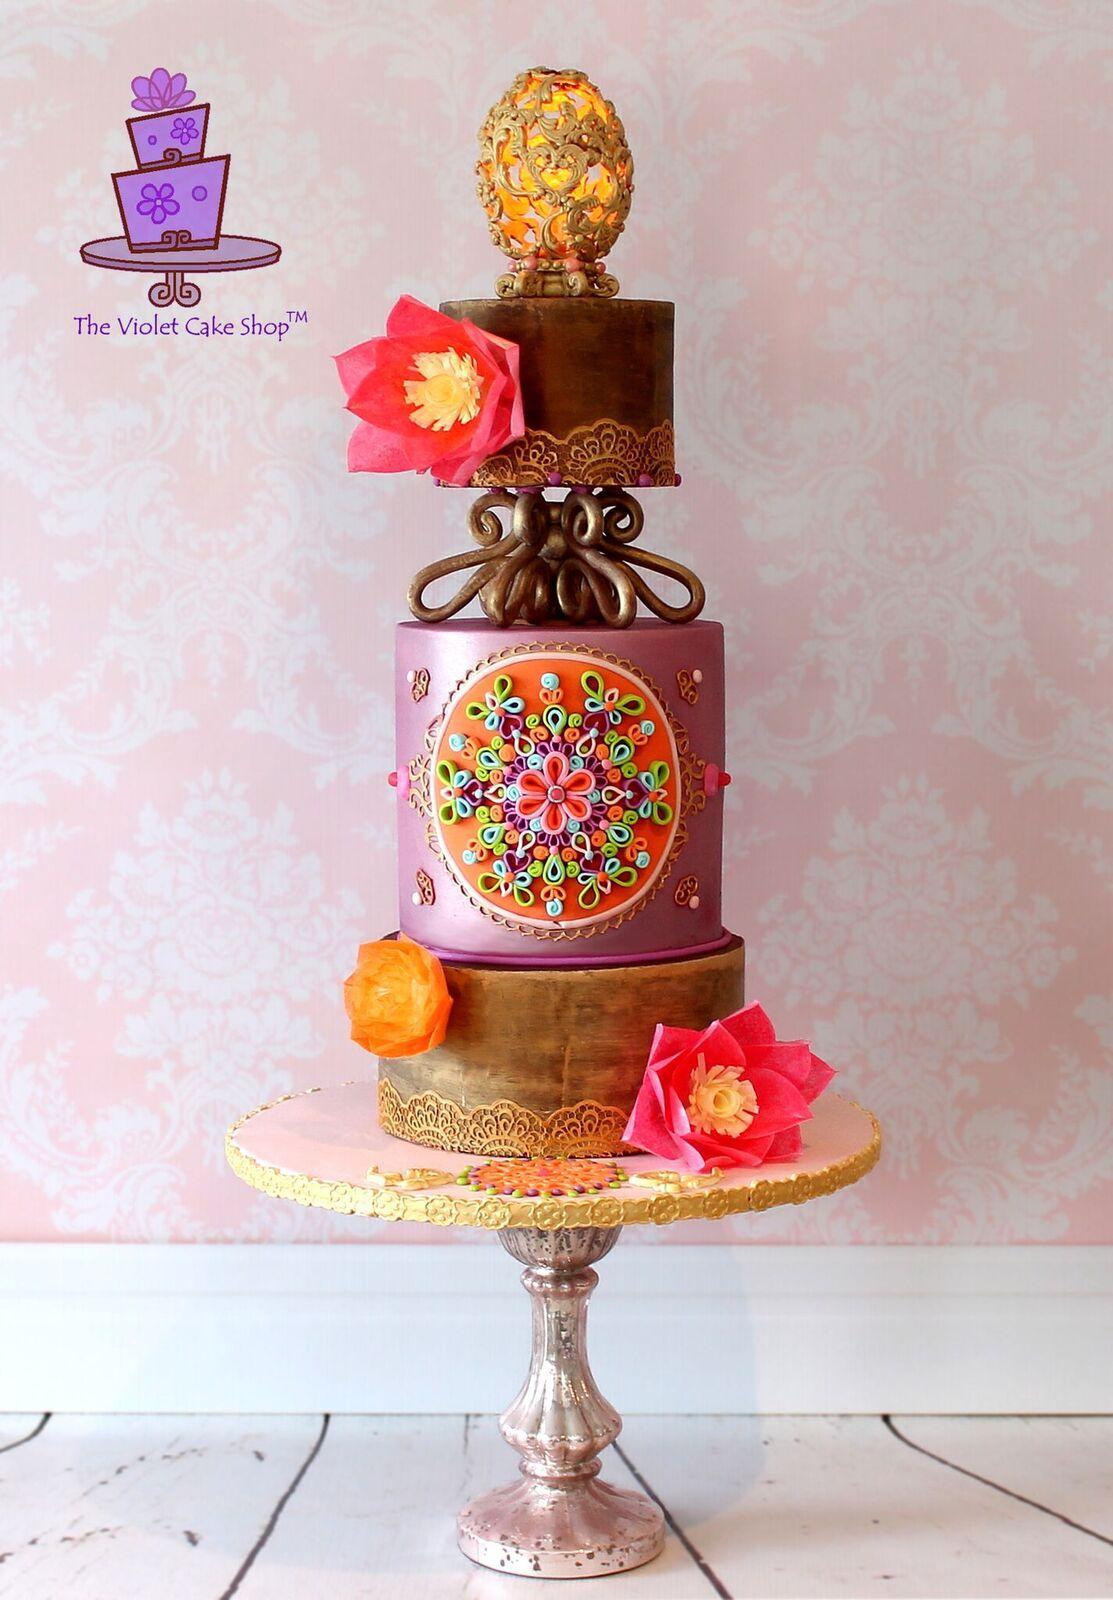 Golden Egg baroque styled cake